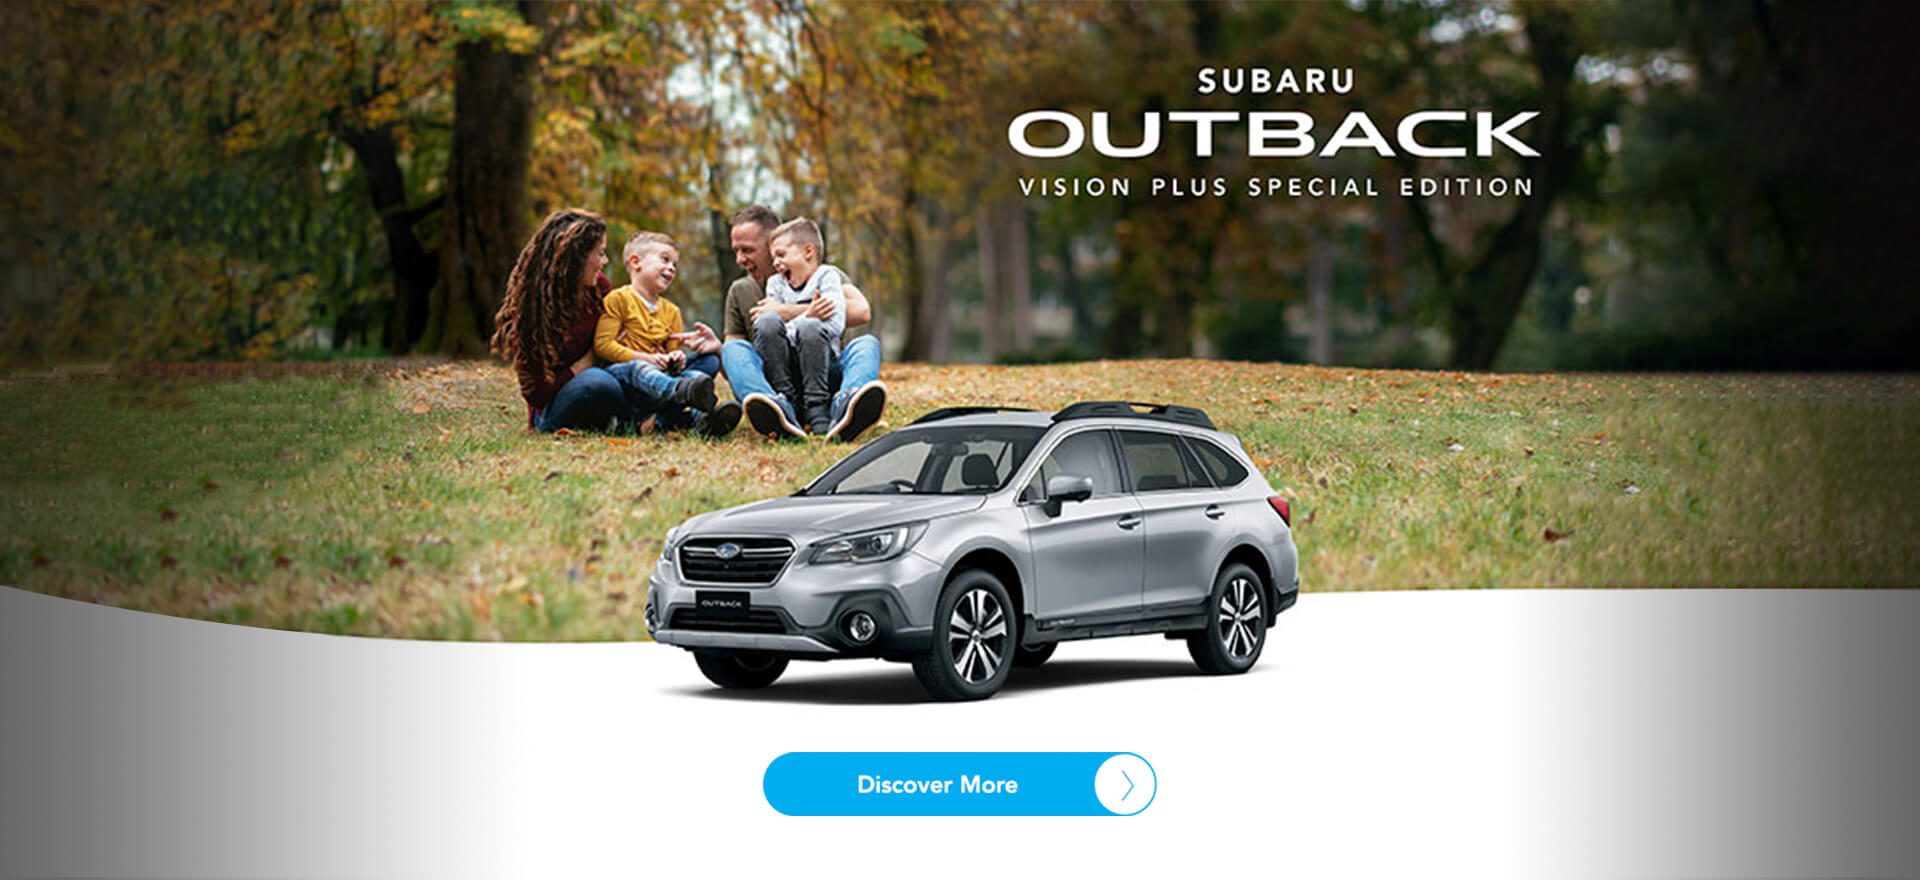 Reef City Motors Subaru Offers